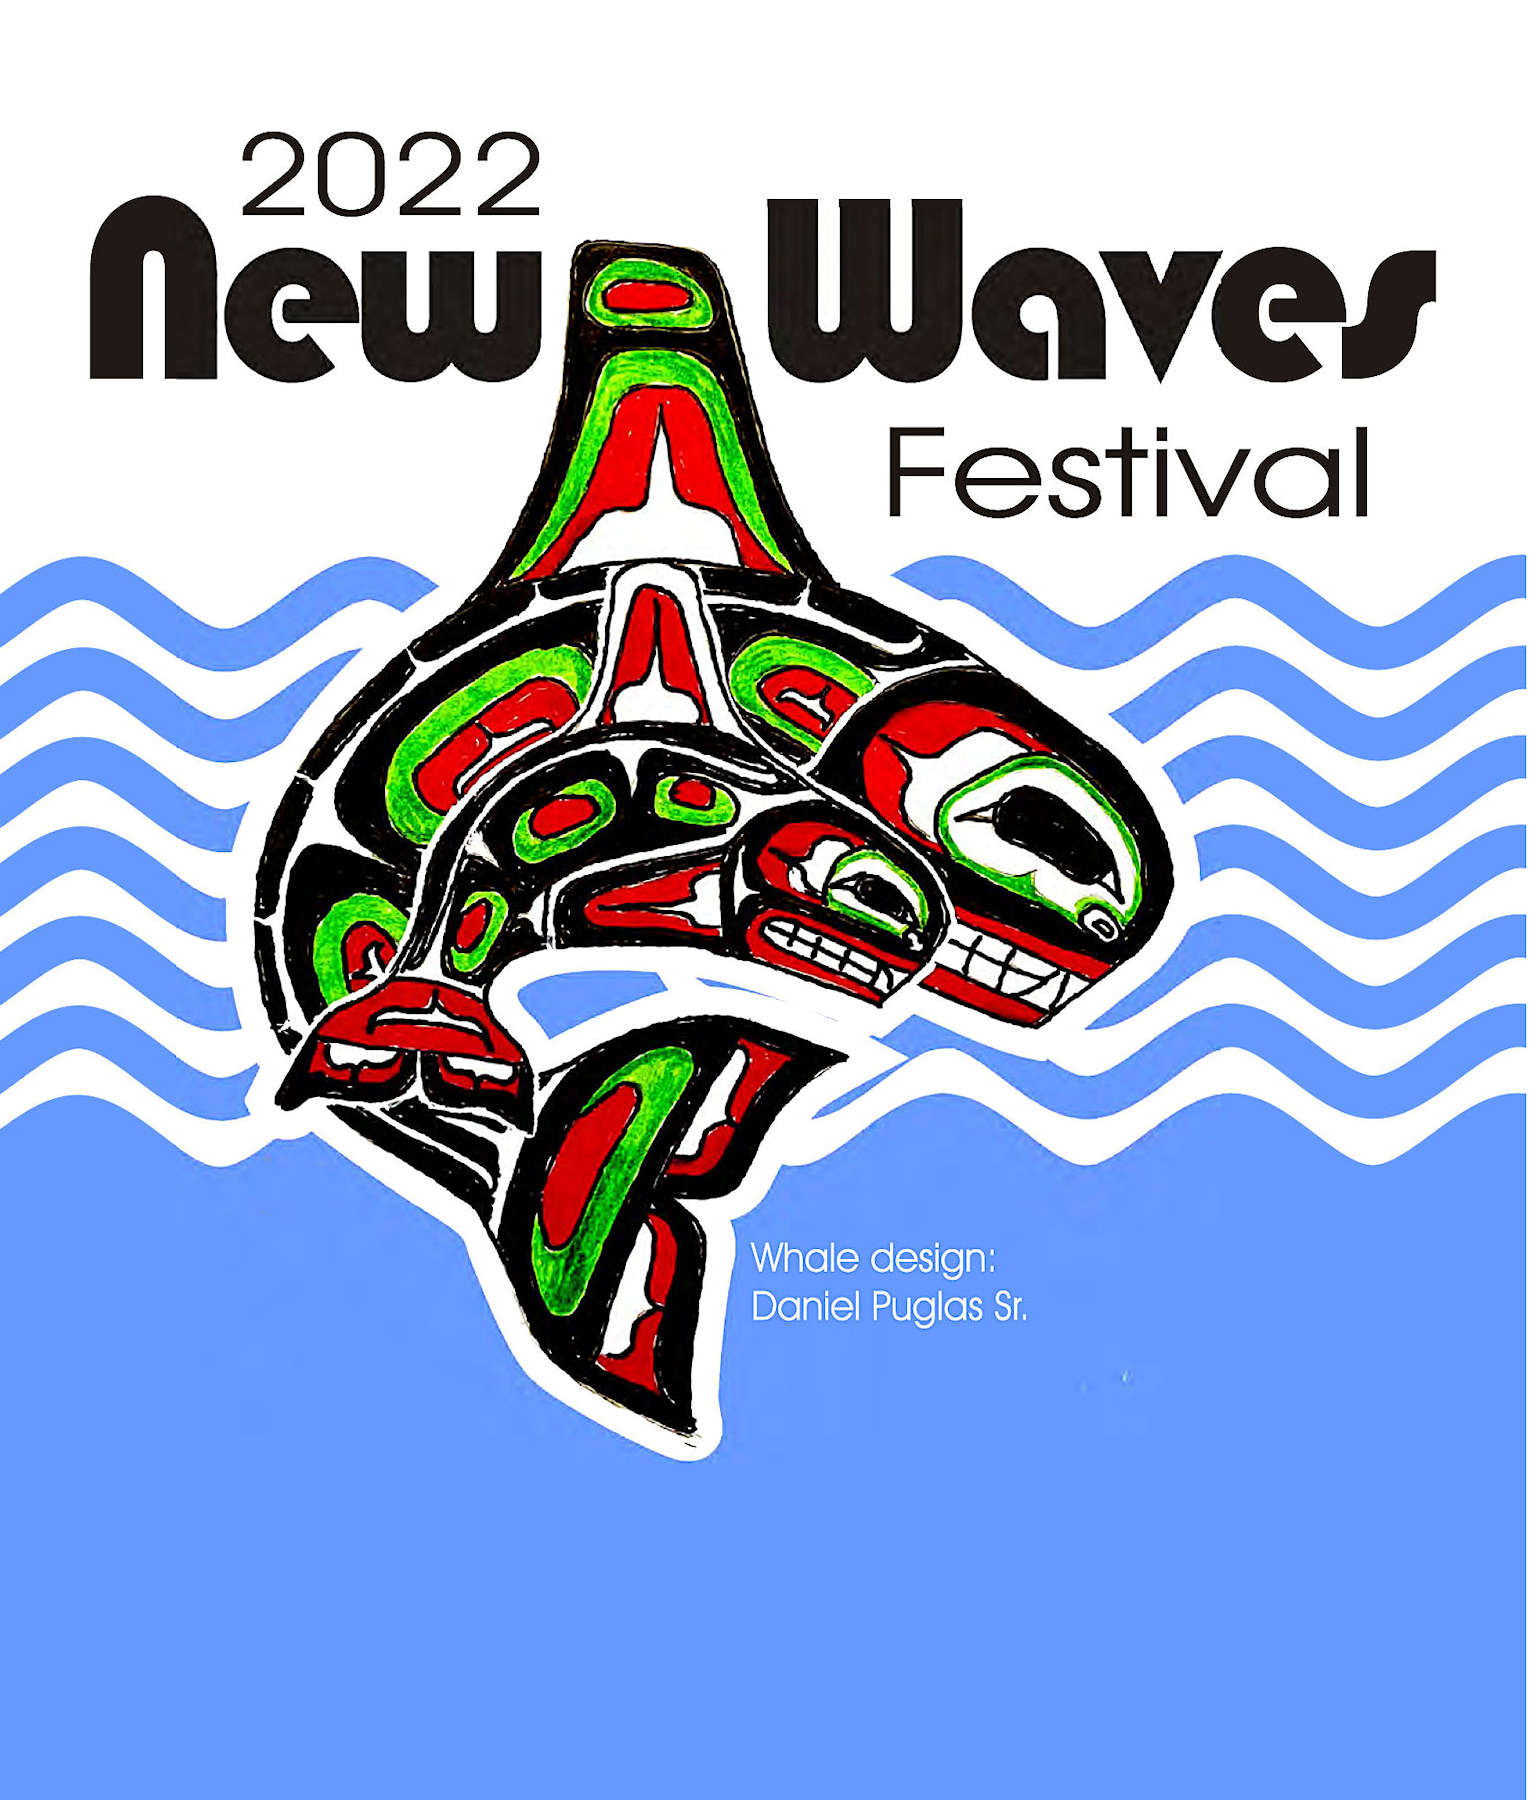 The 2022 New Waves Festival